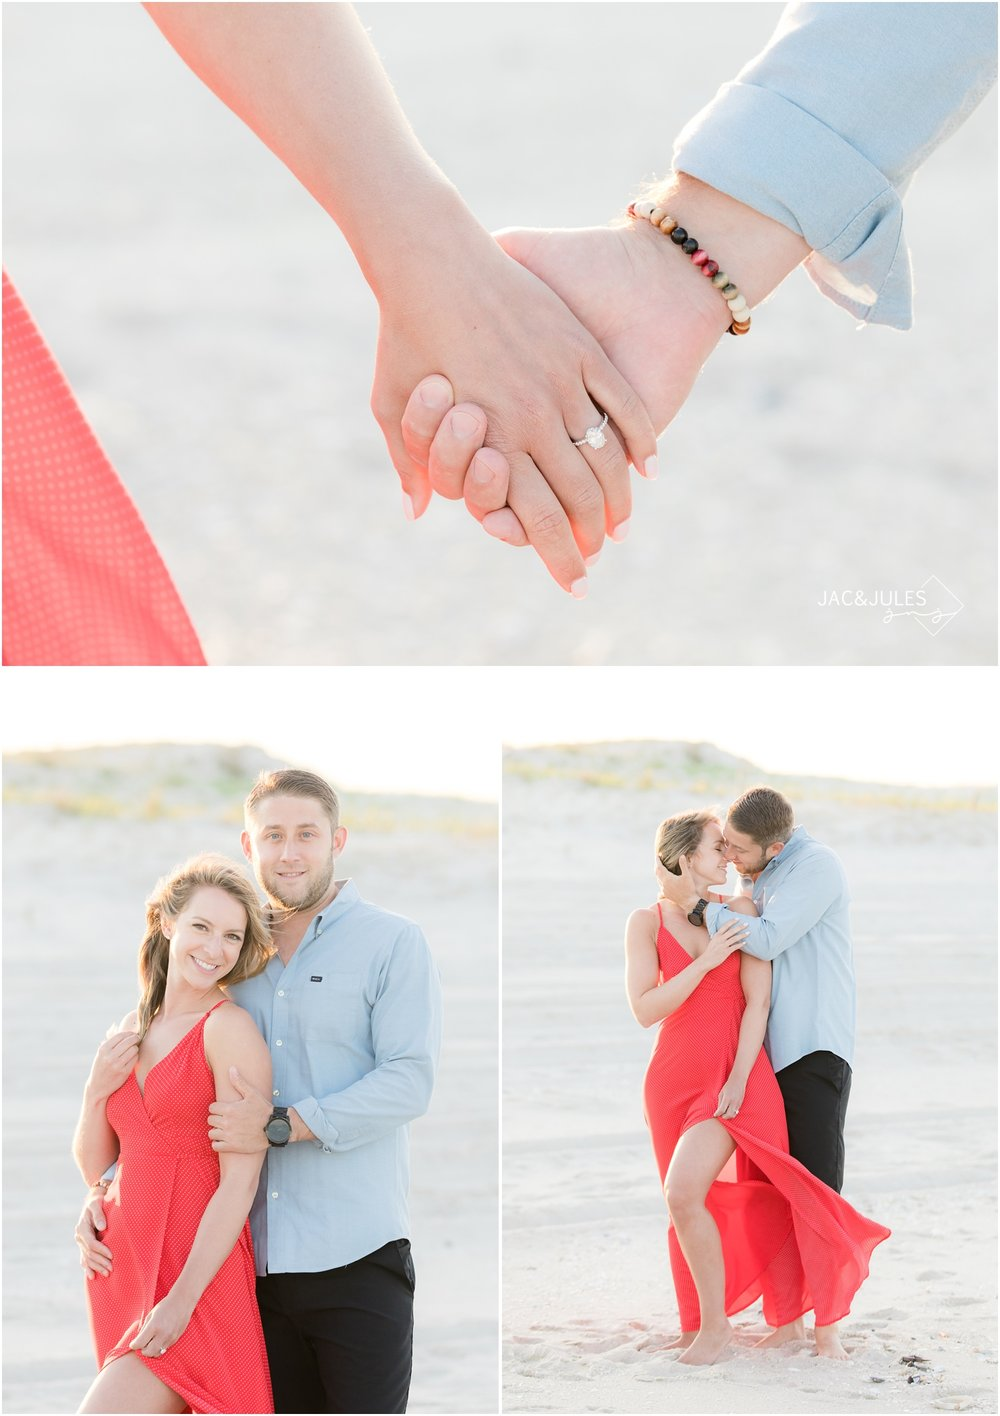 Fun and romantic photos of engaged couple holding hands and kissing on the beach at Island Beach State Park in Seaside Park, NJ.